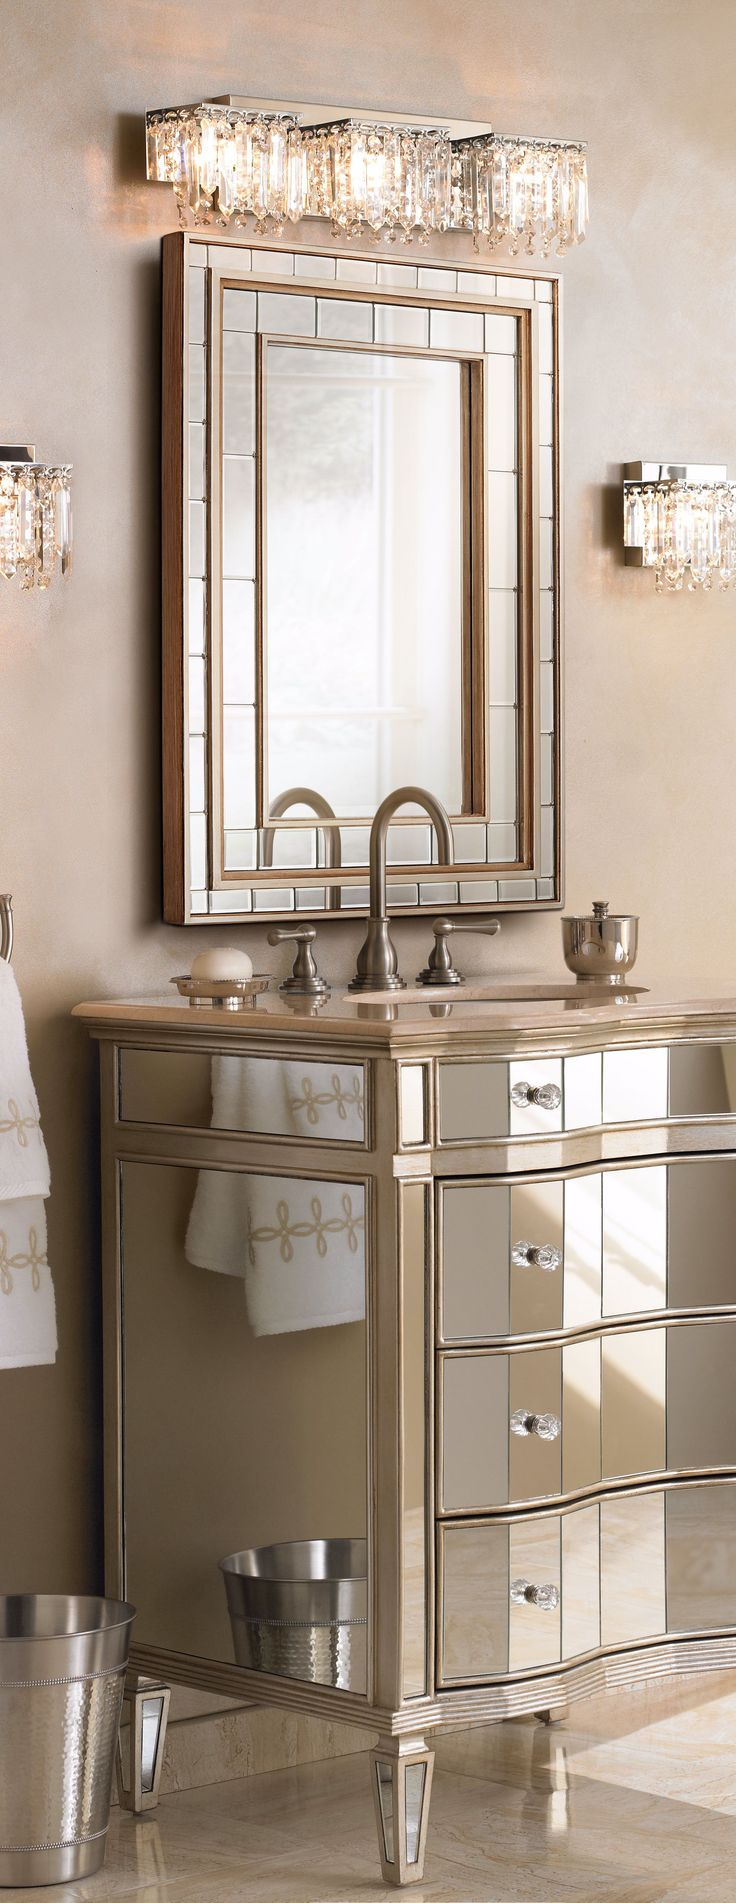 A Glamorous Bathroom With Plenty Of Mirrors And Mirrored Furniture.  Products: Possini Euro Design